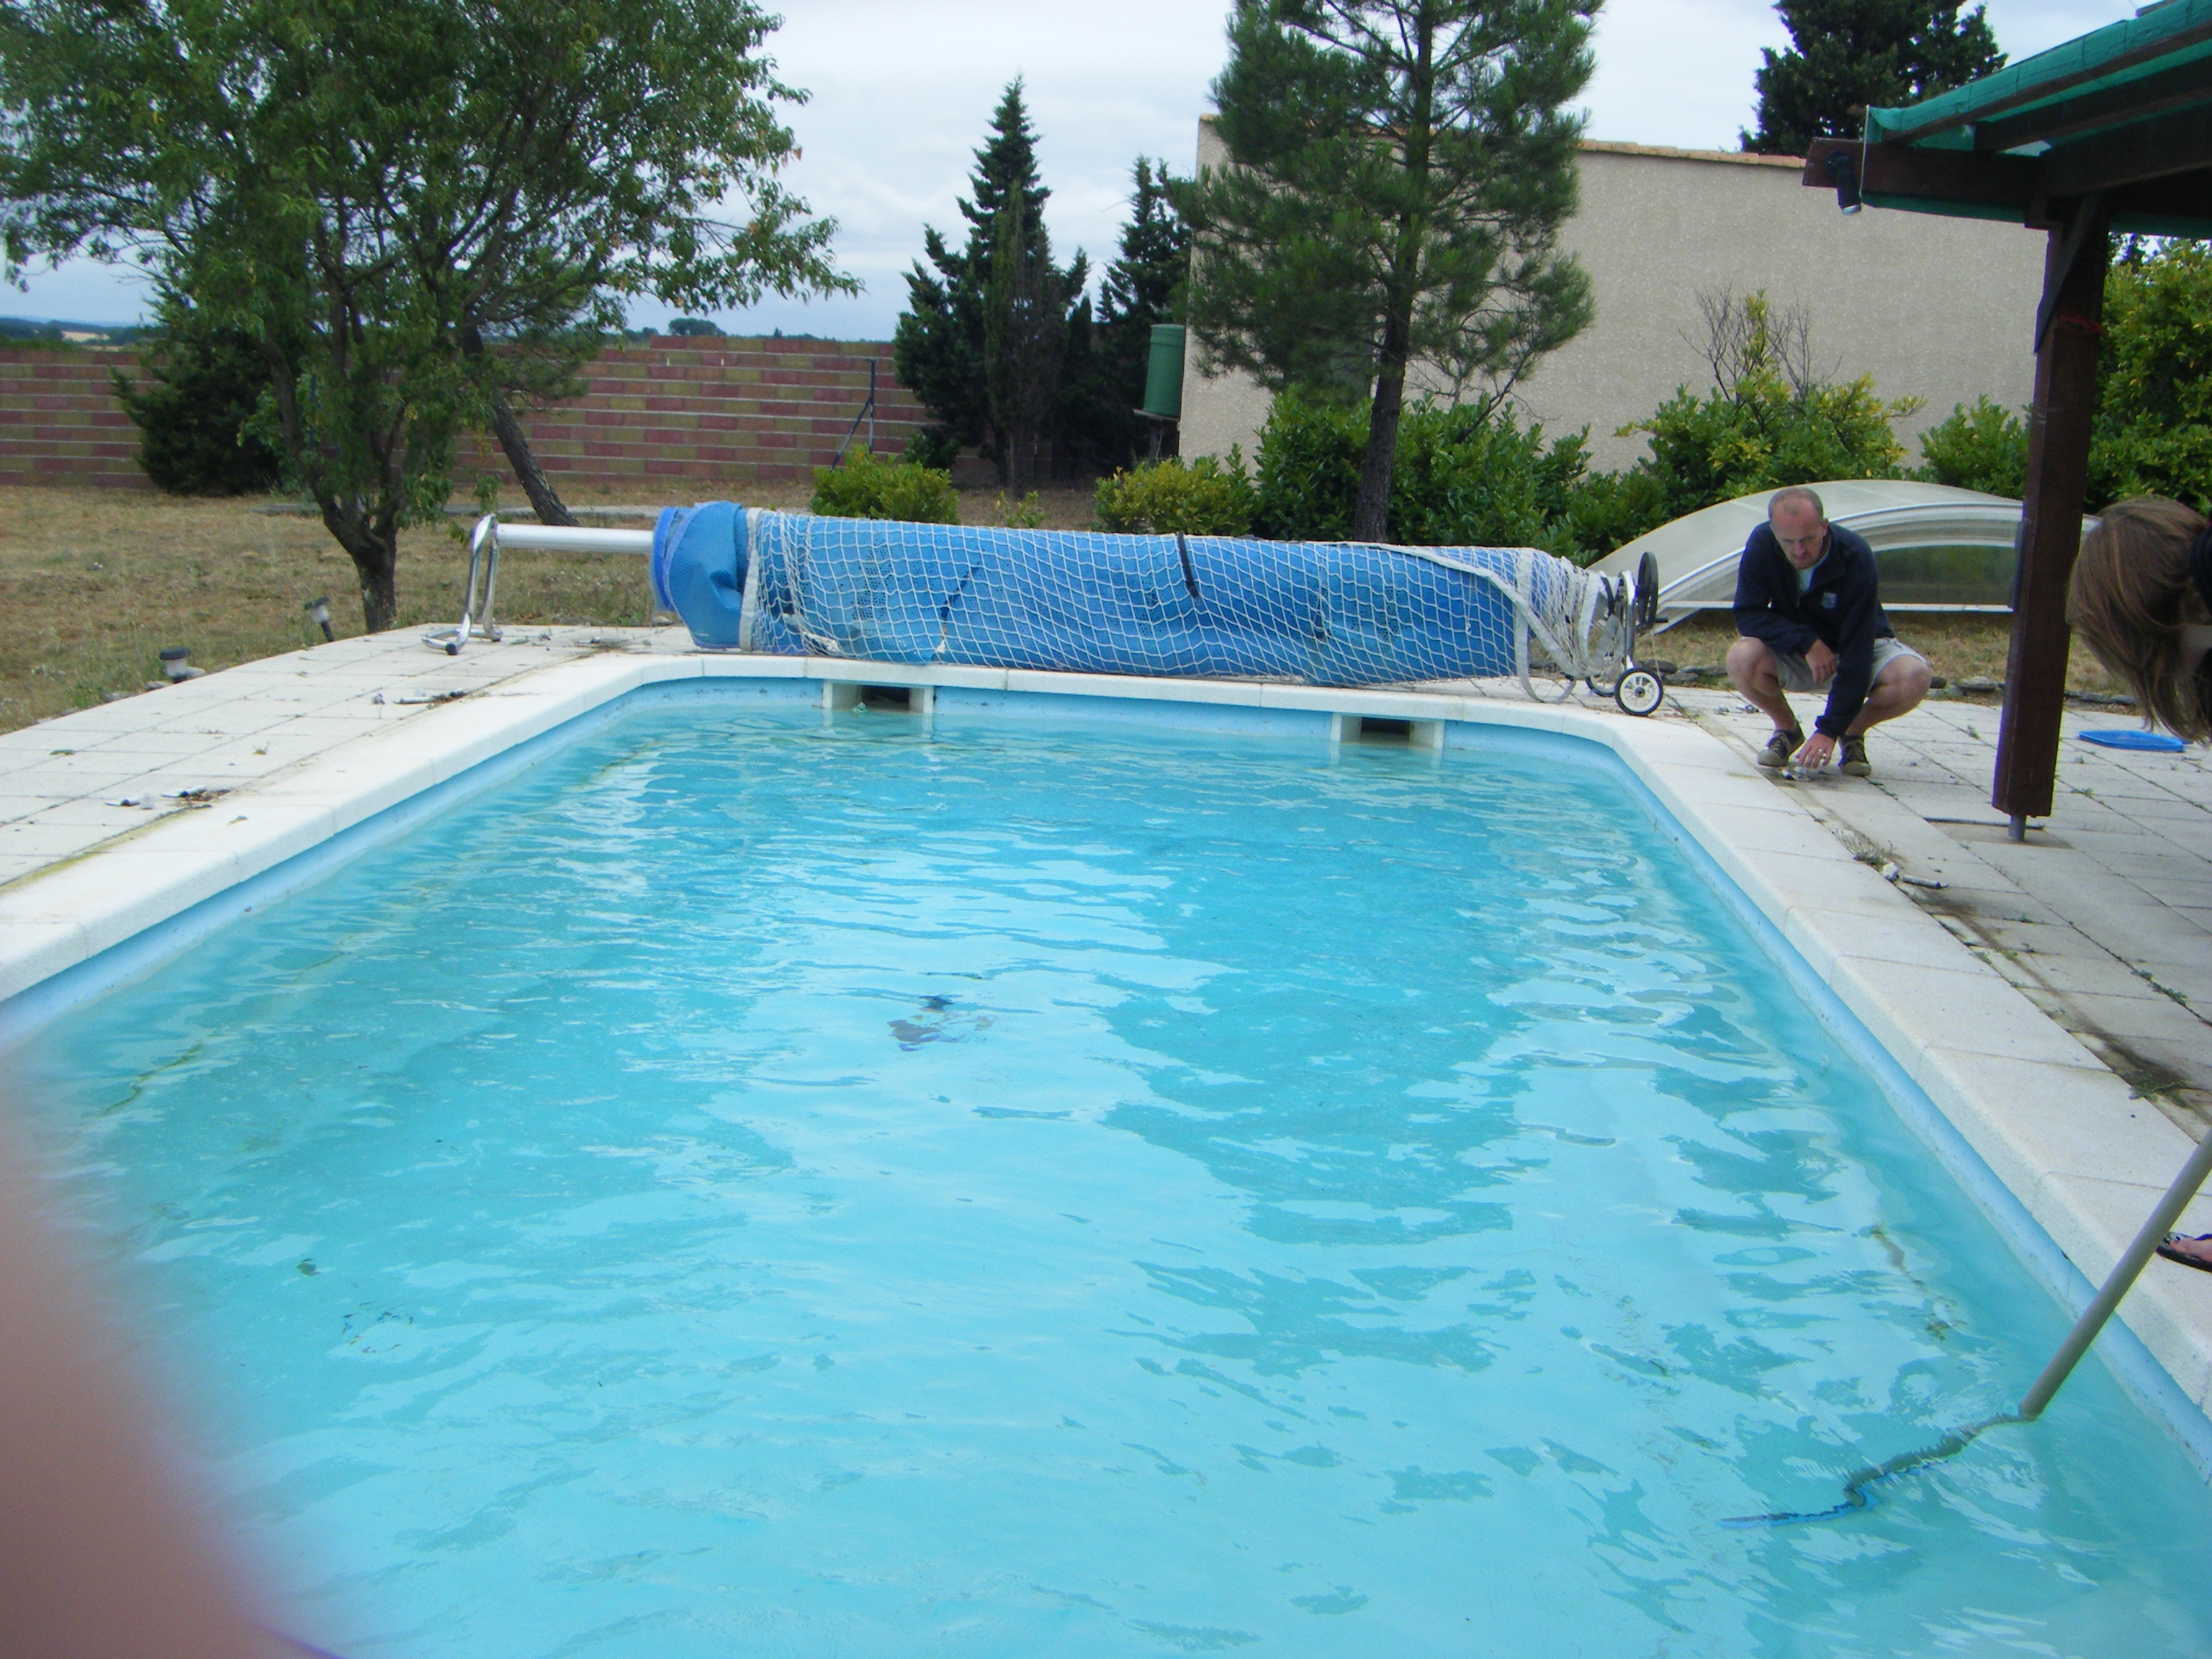 Different pool cleaning services are provided by different experts